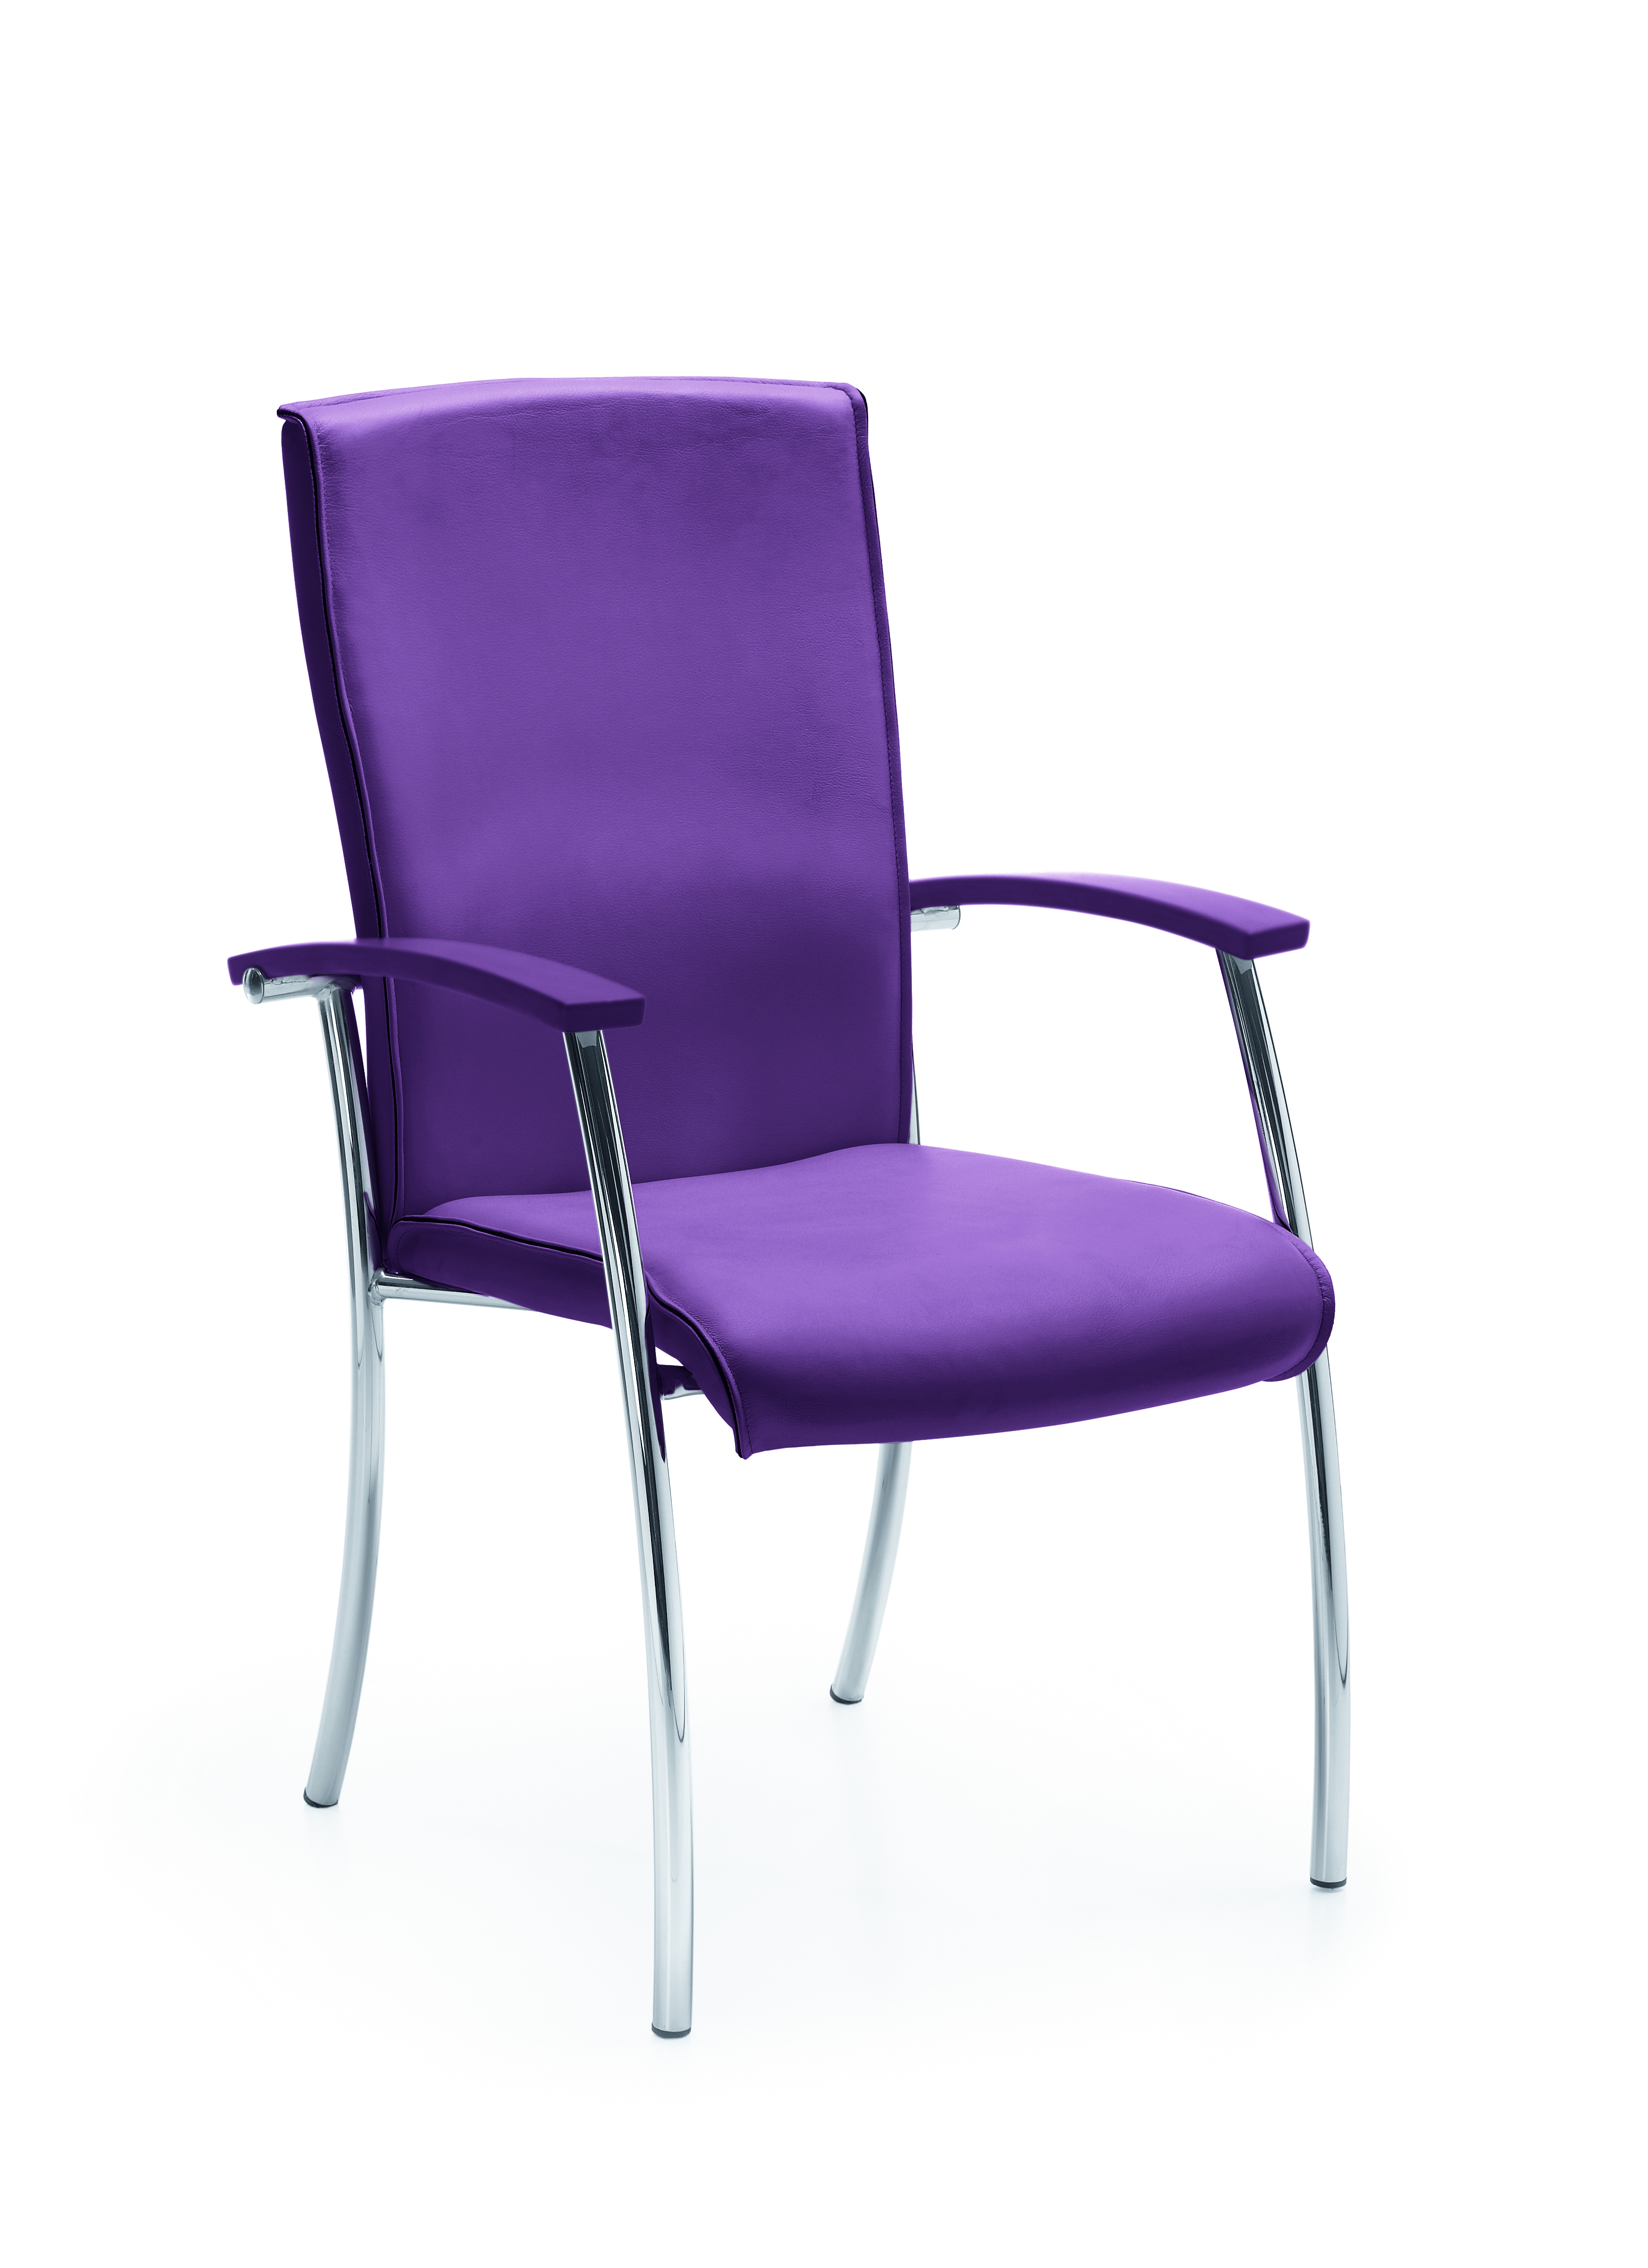 desk chair dublin hanging takealot niko office furniture chairs supplies in